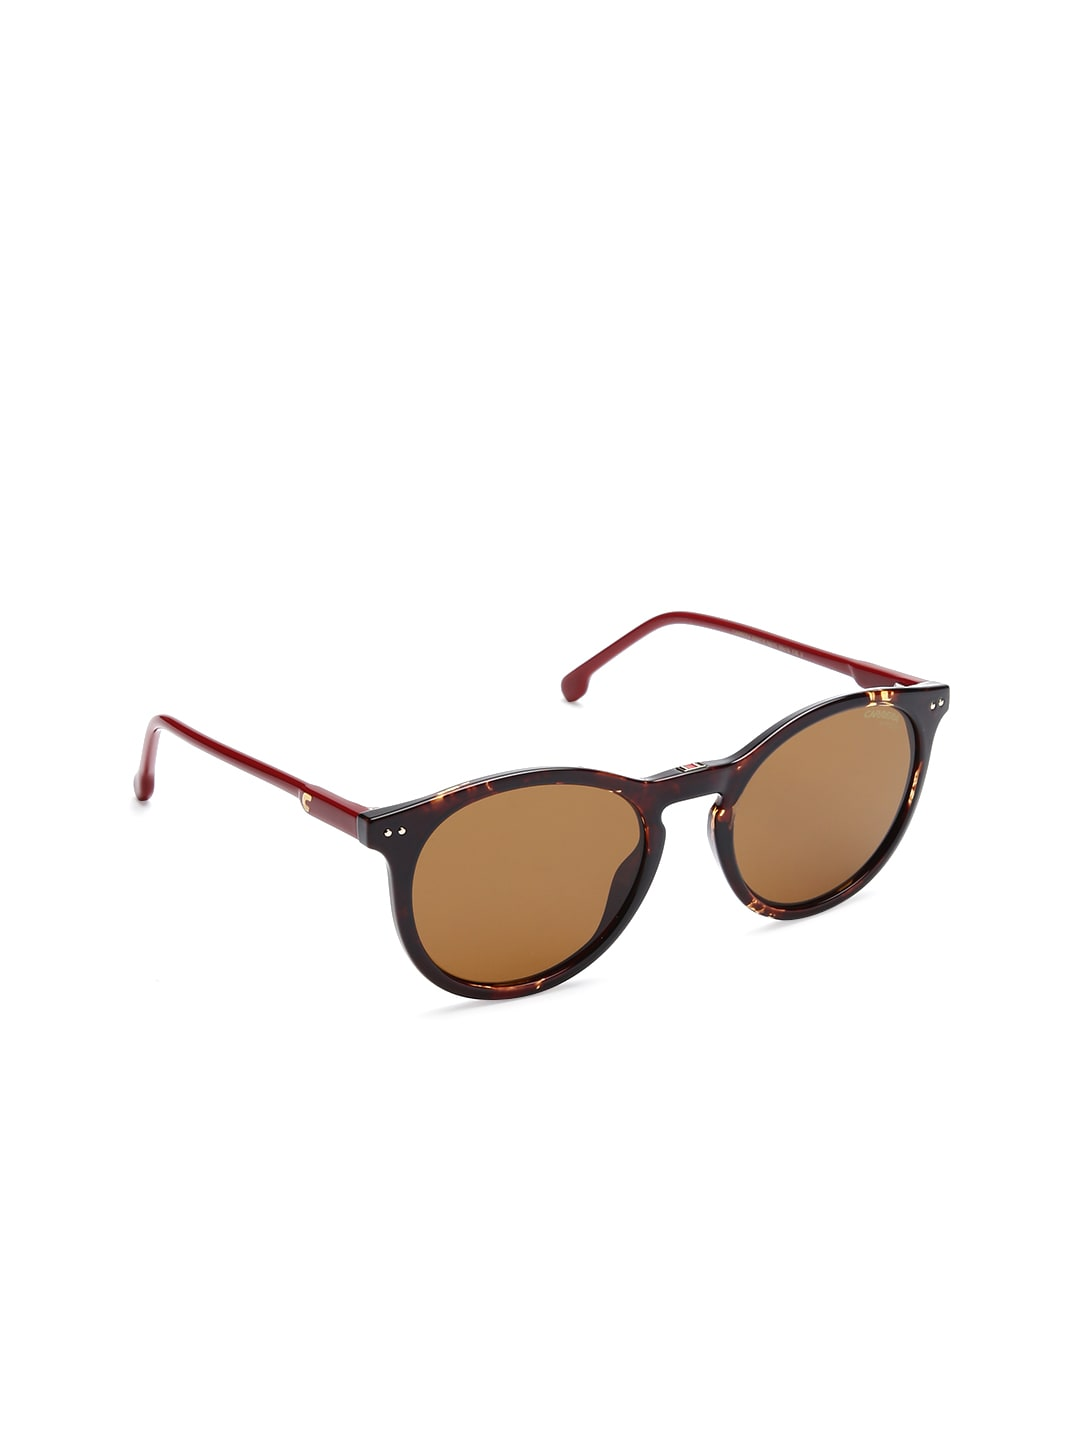 011749665a Carrera Sunglasses -Buy Carrera Sunglass Online in India